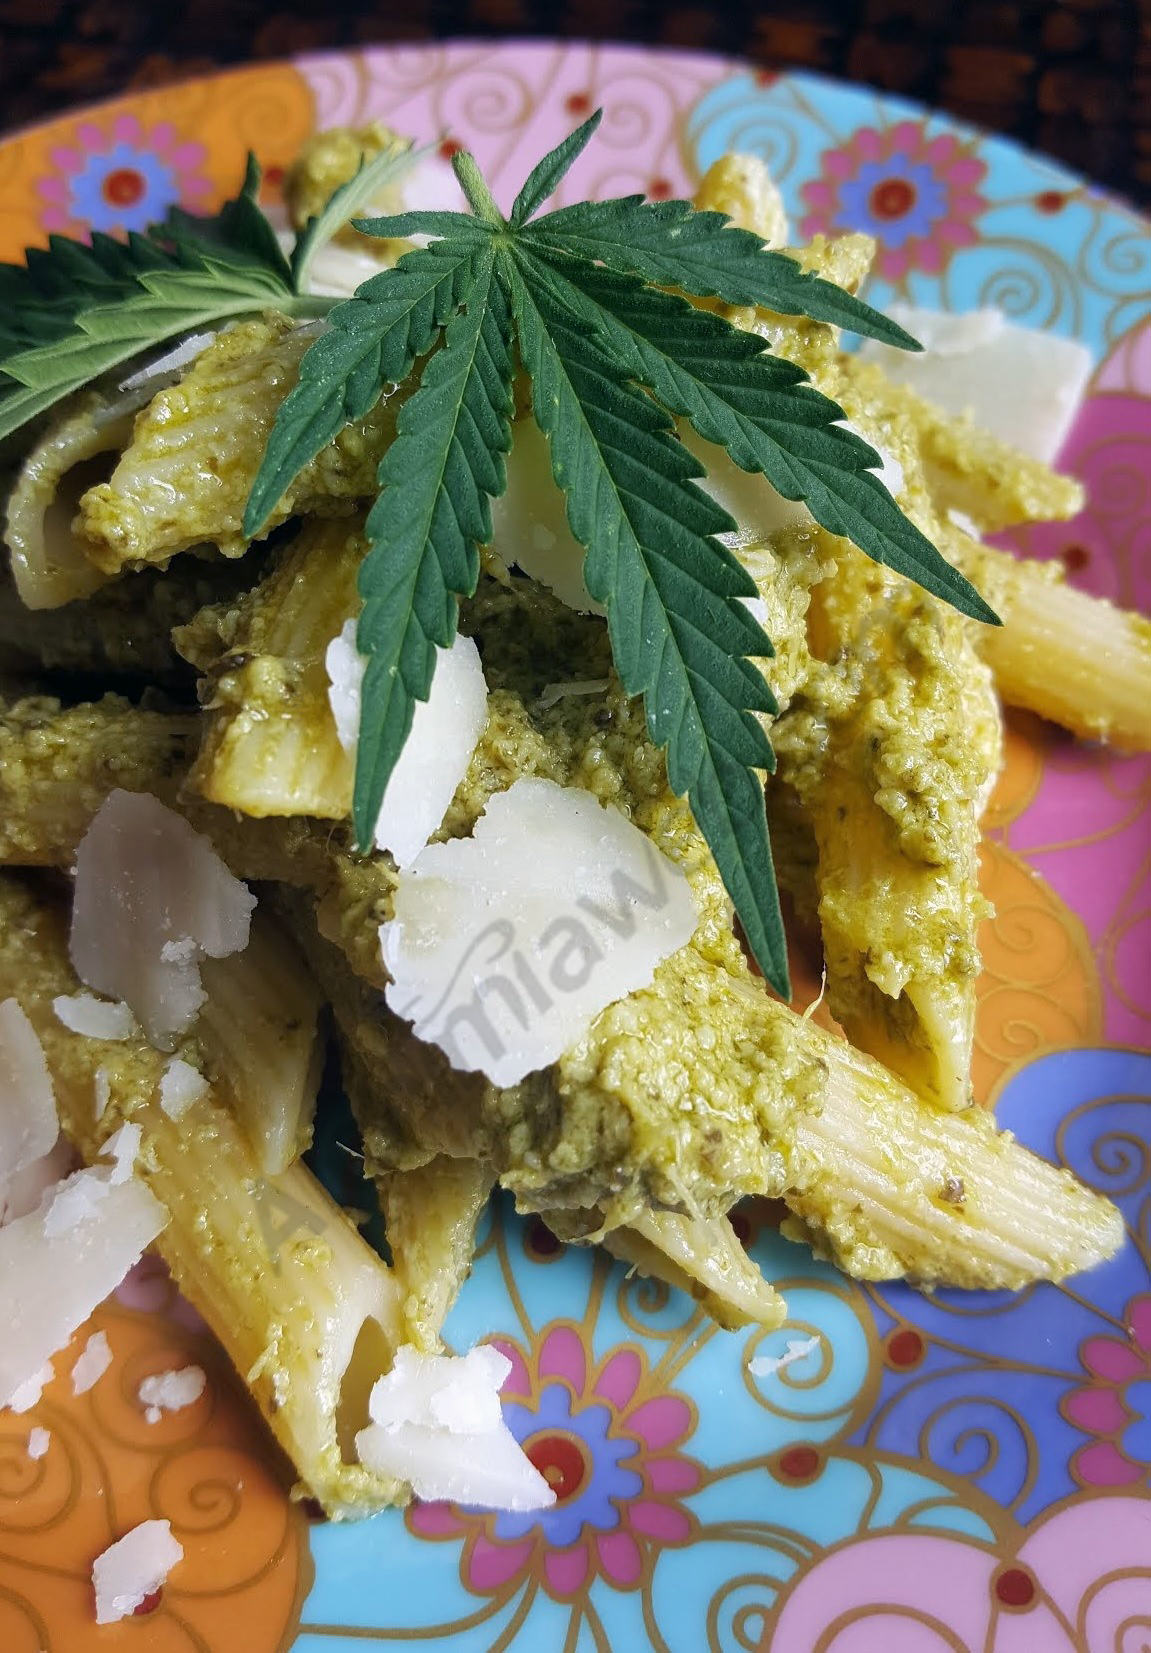 Our cannabis pesto with pasta is ready!